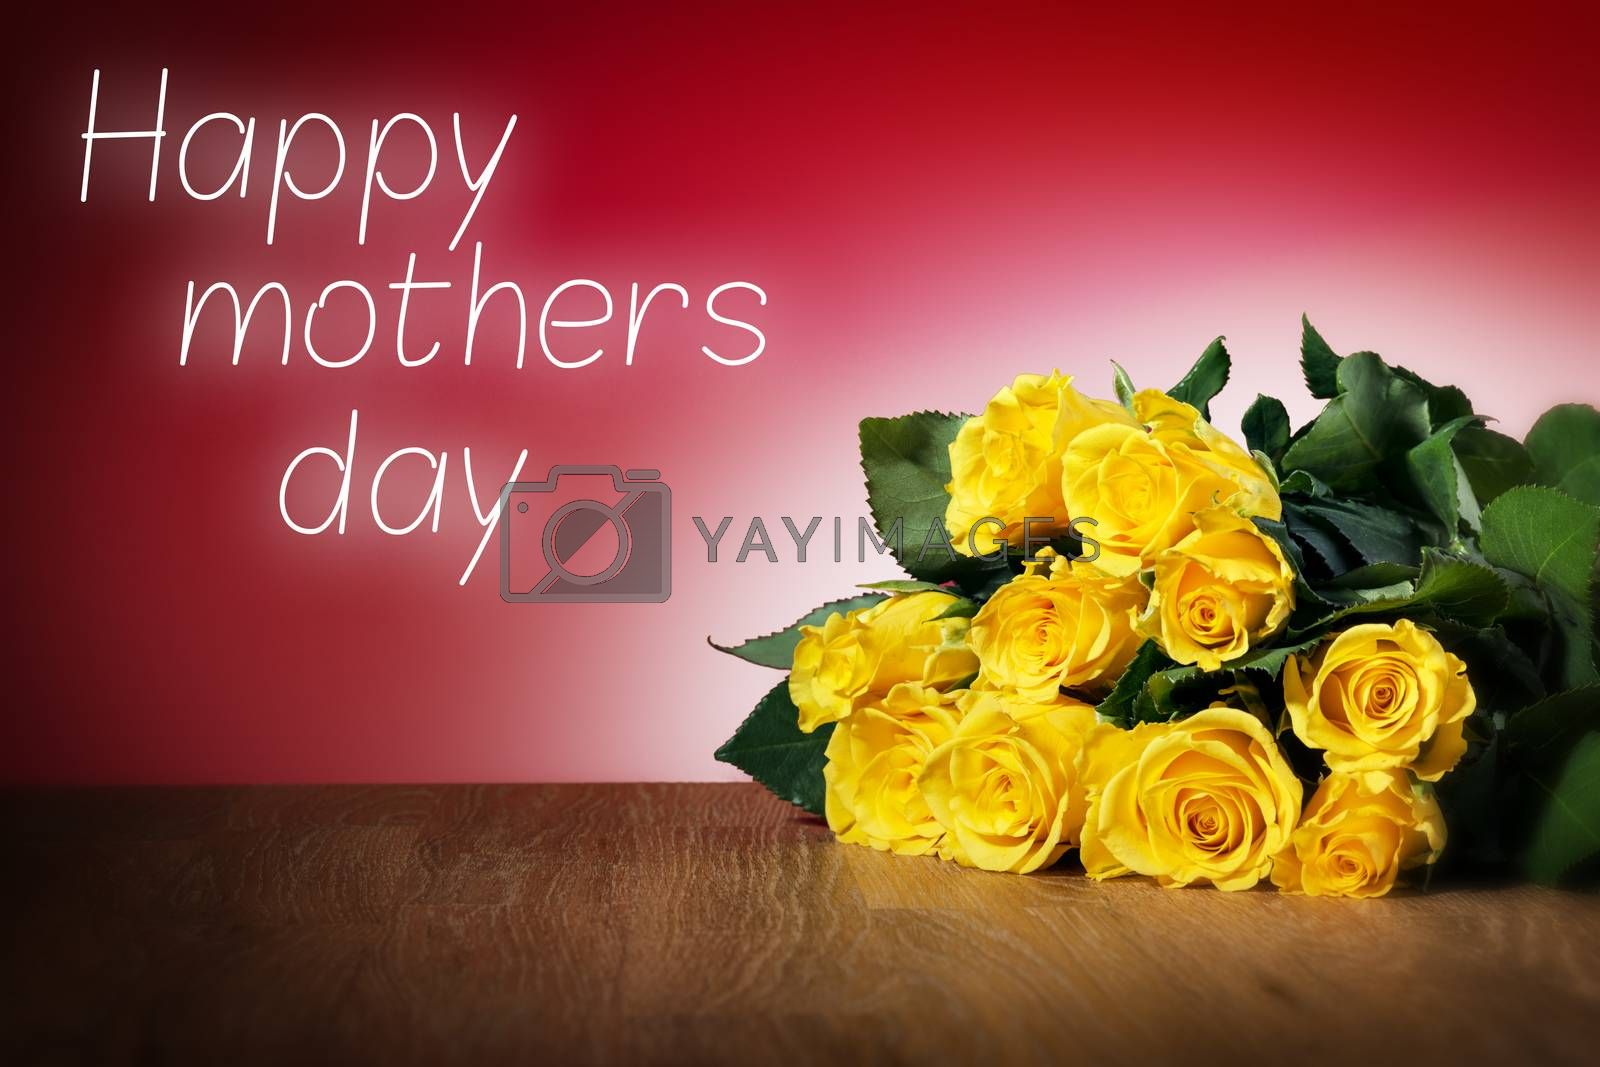 Bunch of yellow roses on a table and with red background, message happy mothers day